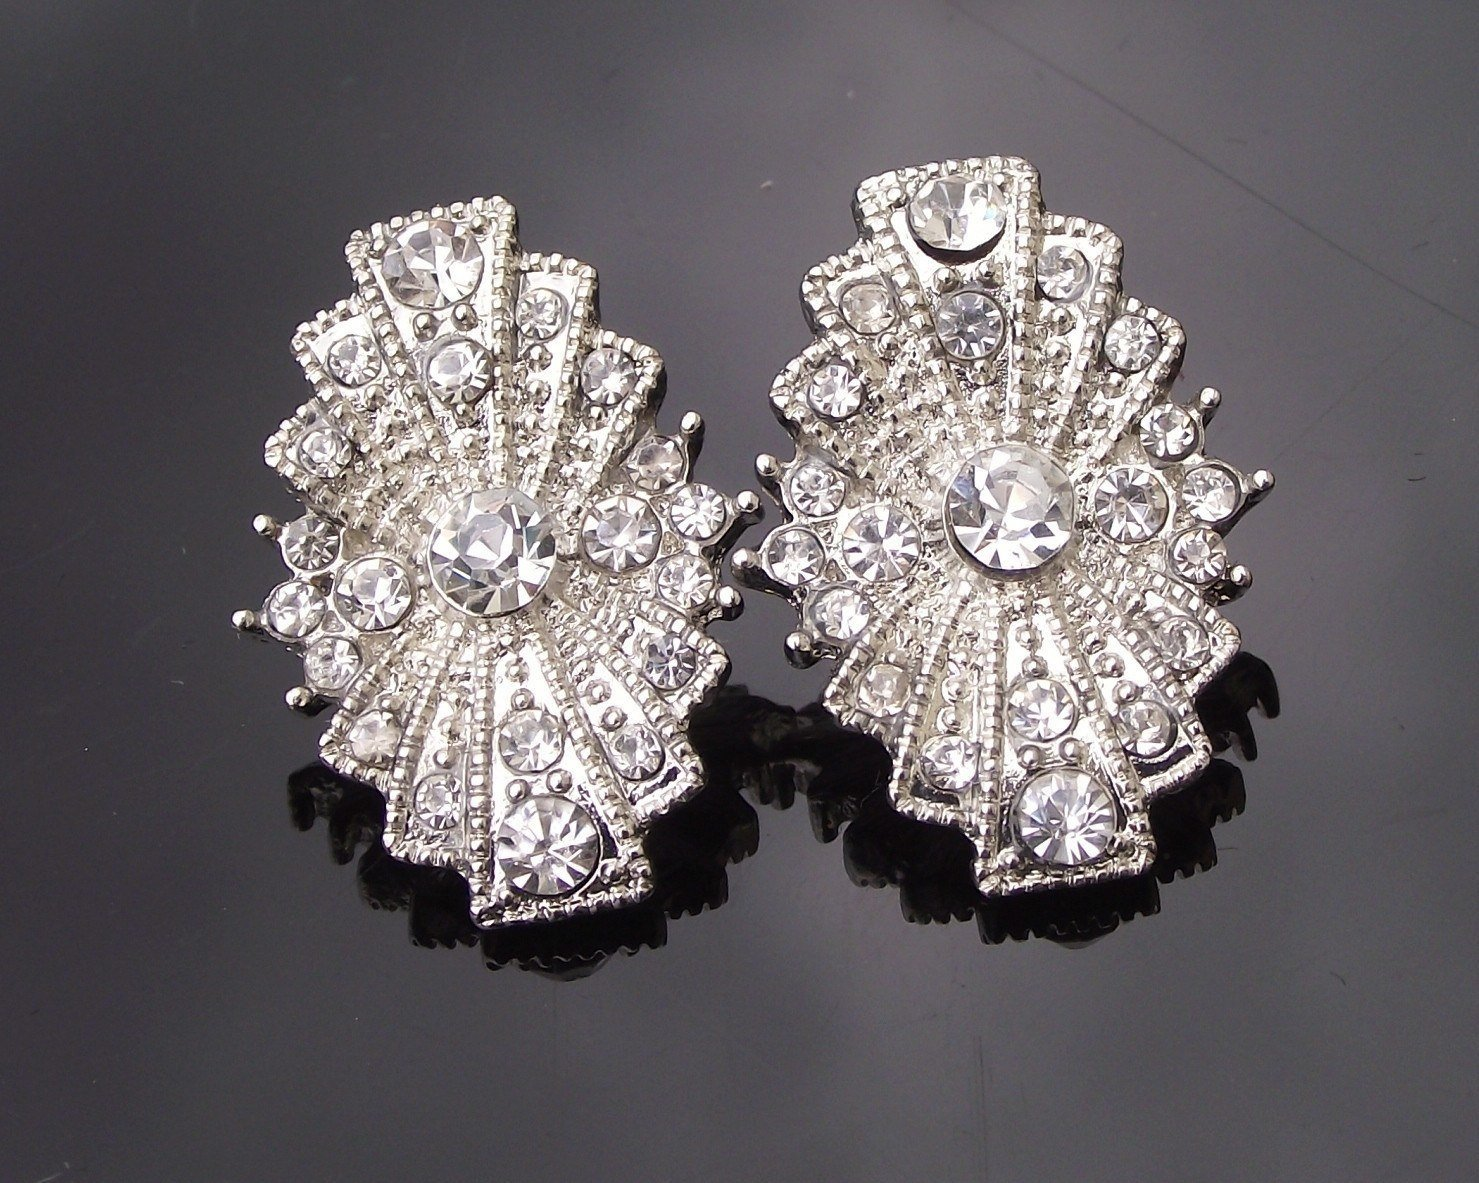 Wedding Earrings - Rhinestone Stud Earrings, Art Deco Style, Angela